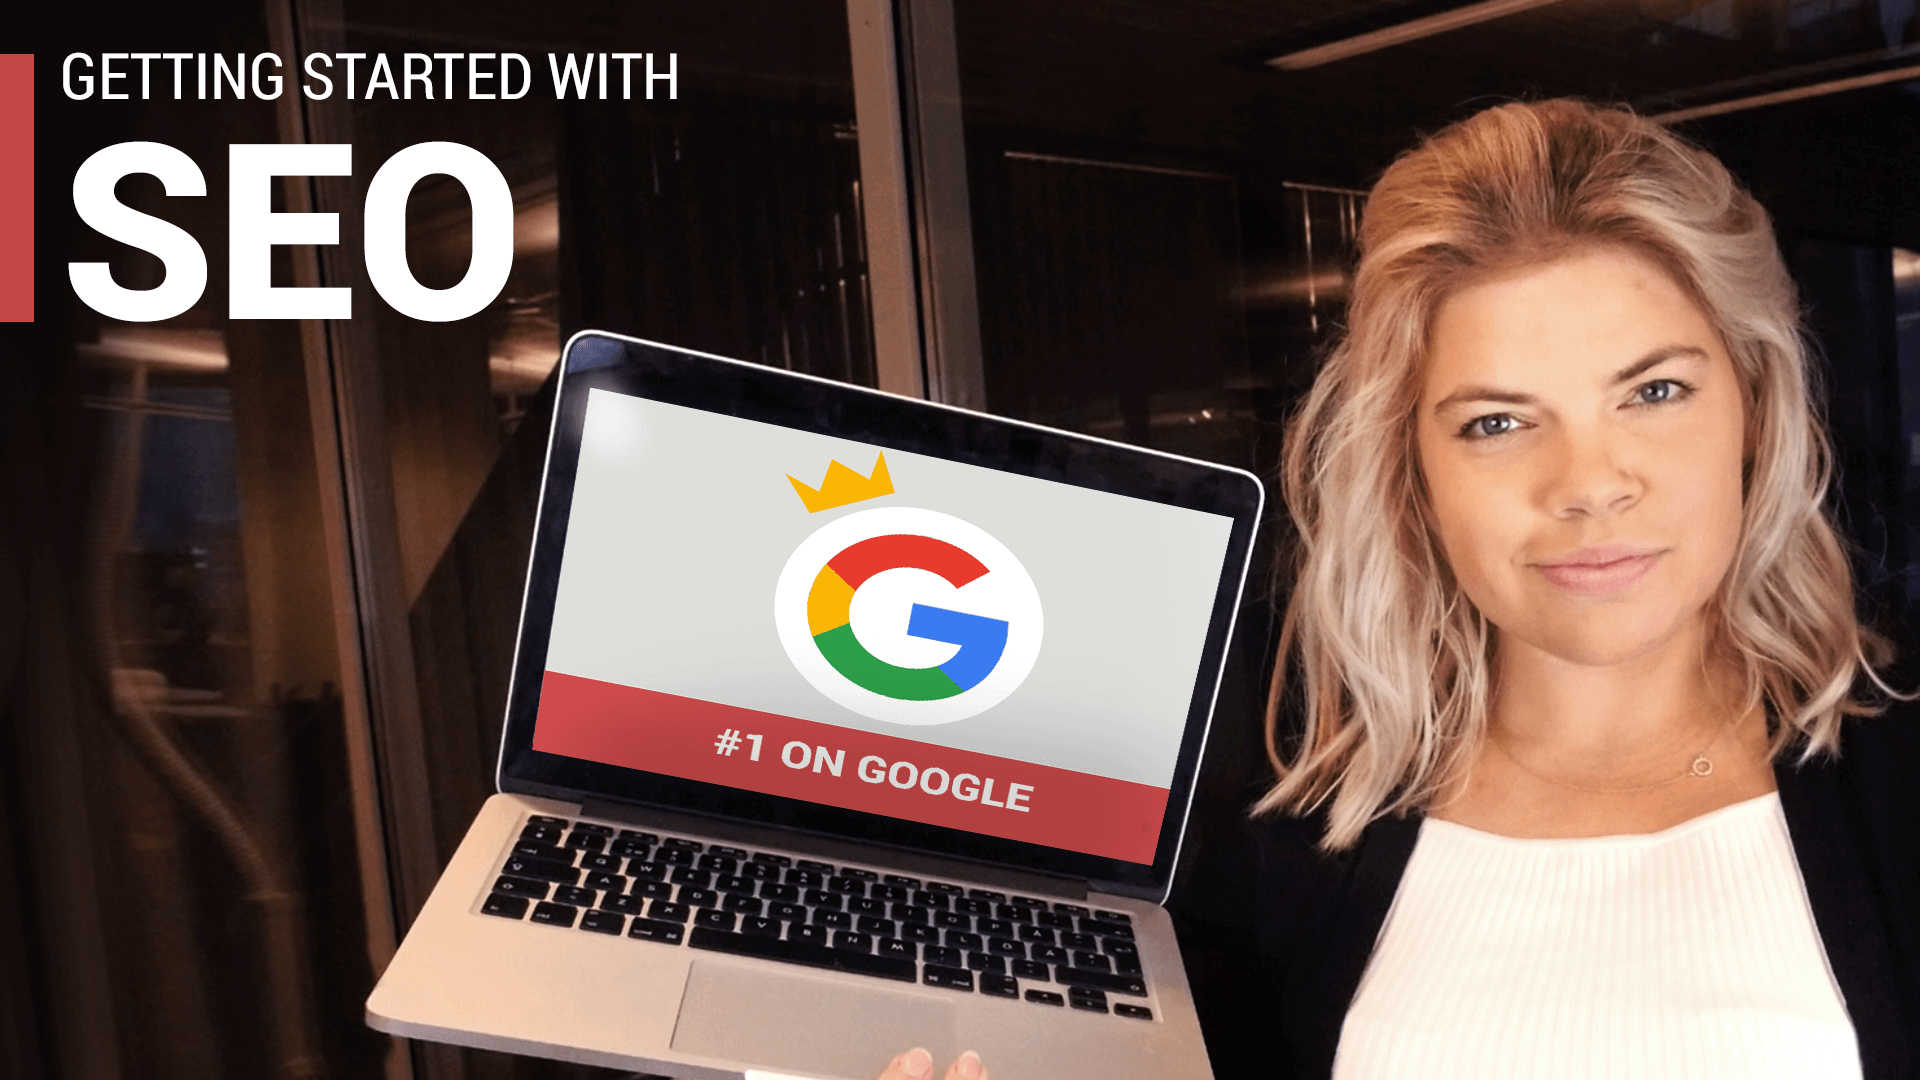 Learn SEO and how to rank better on Google.